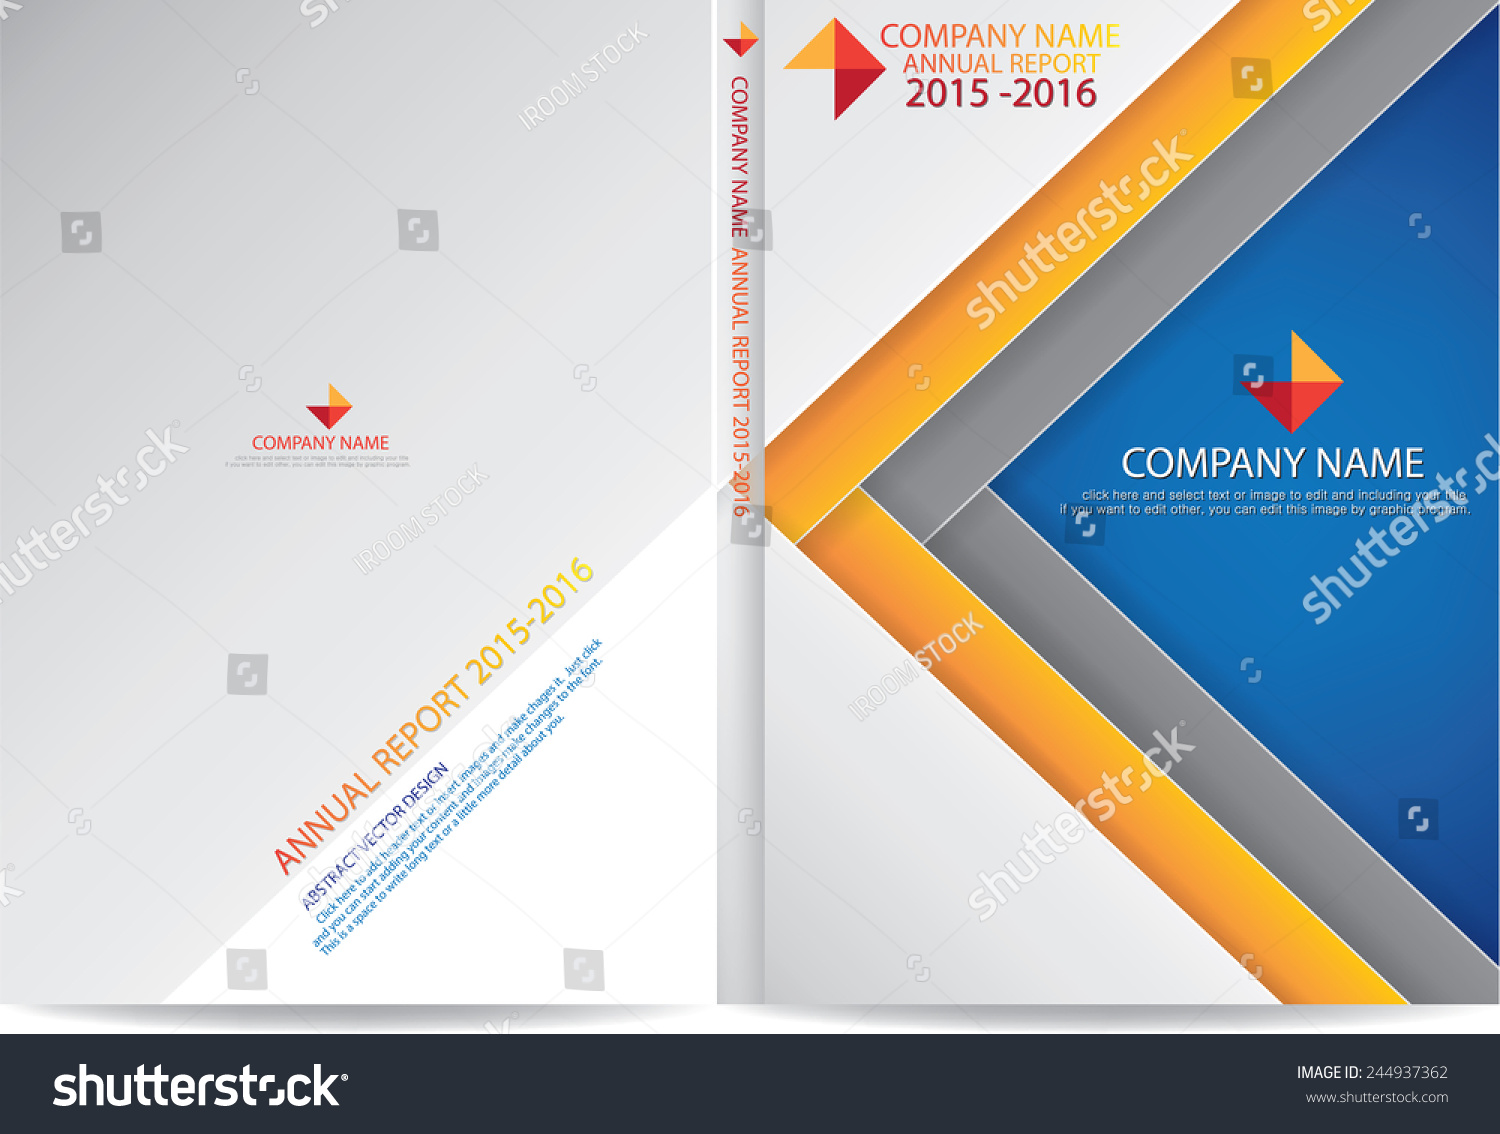 report cover design alphagraph llc tetra tech annual report 2010 cover design 1 report cover design makemoney alex tk